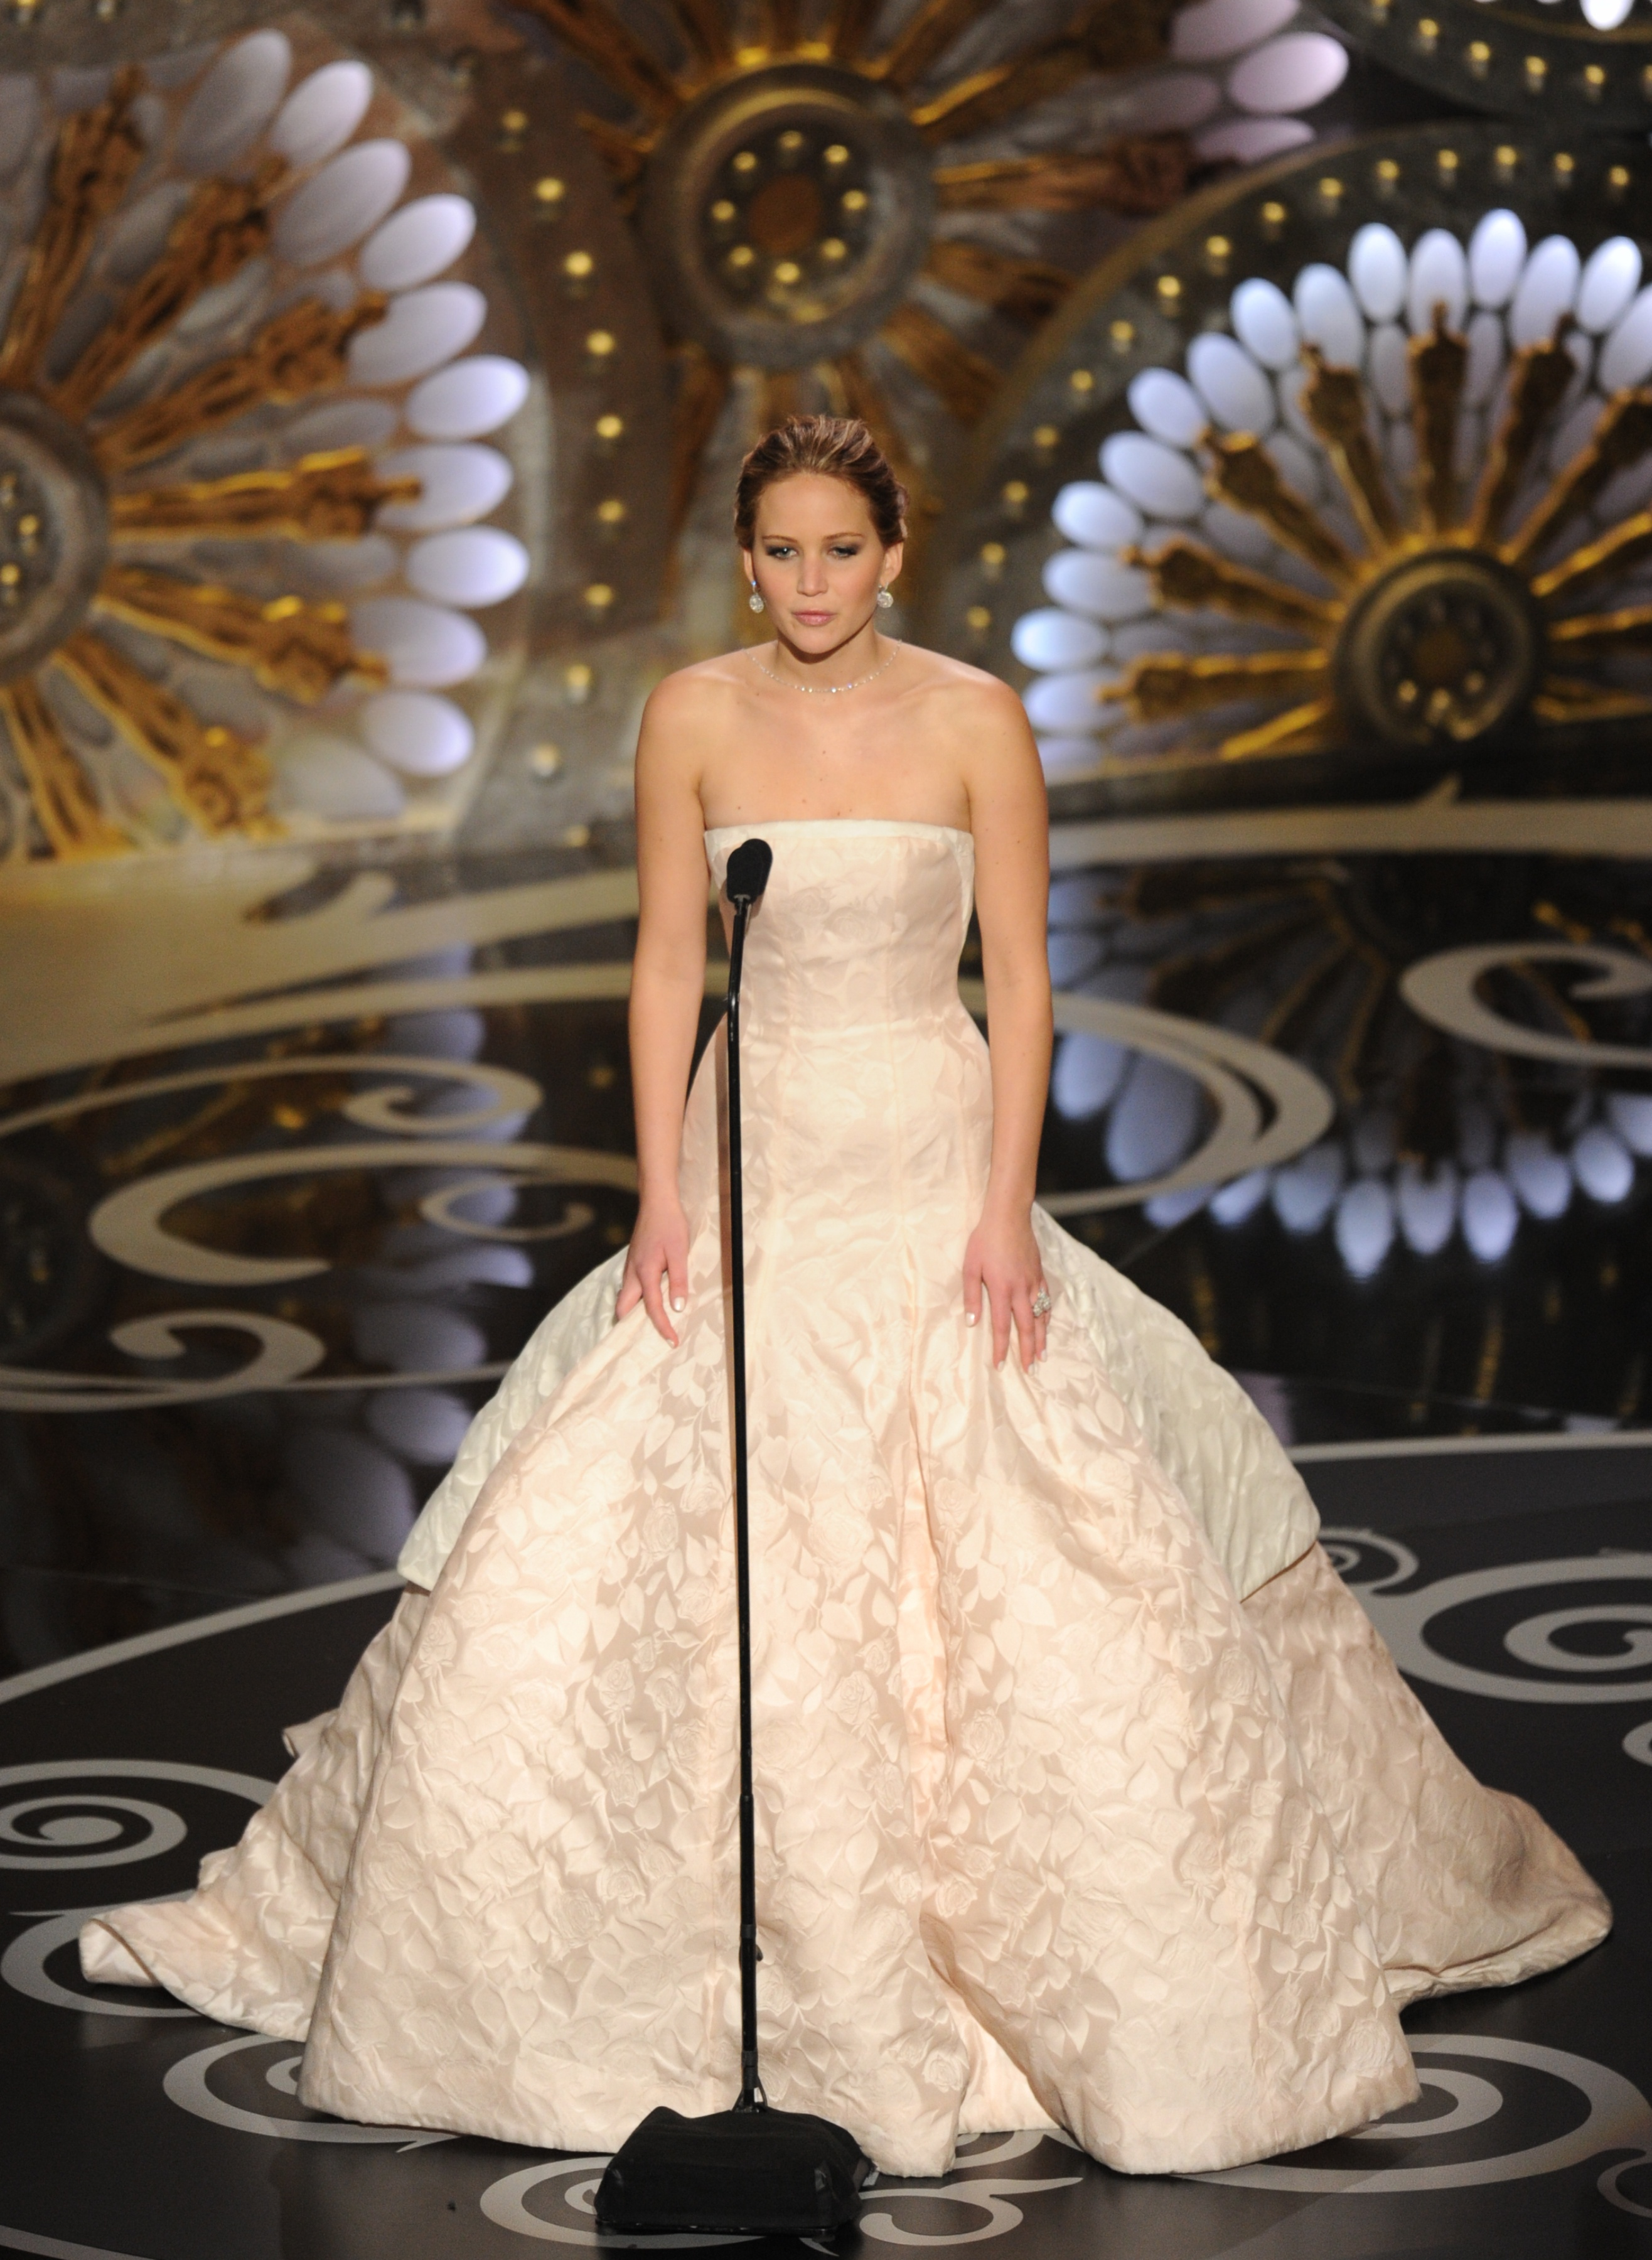 Jennifer Lawrence on stage at the Oscars 2013.